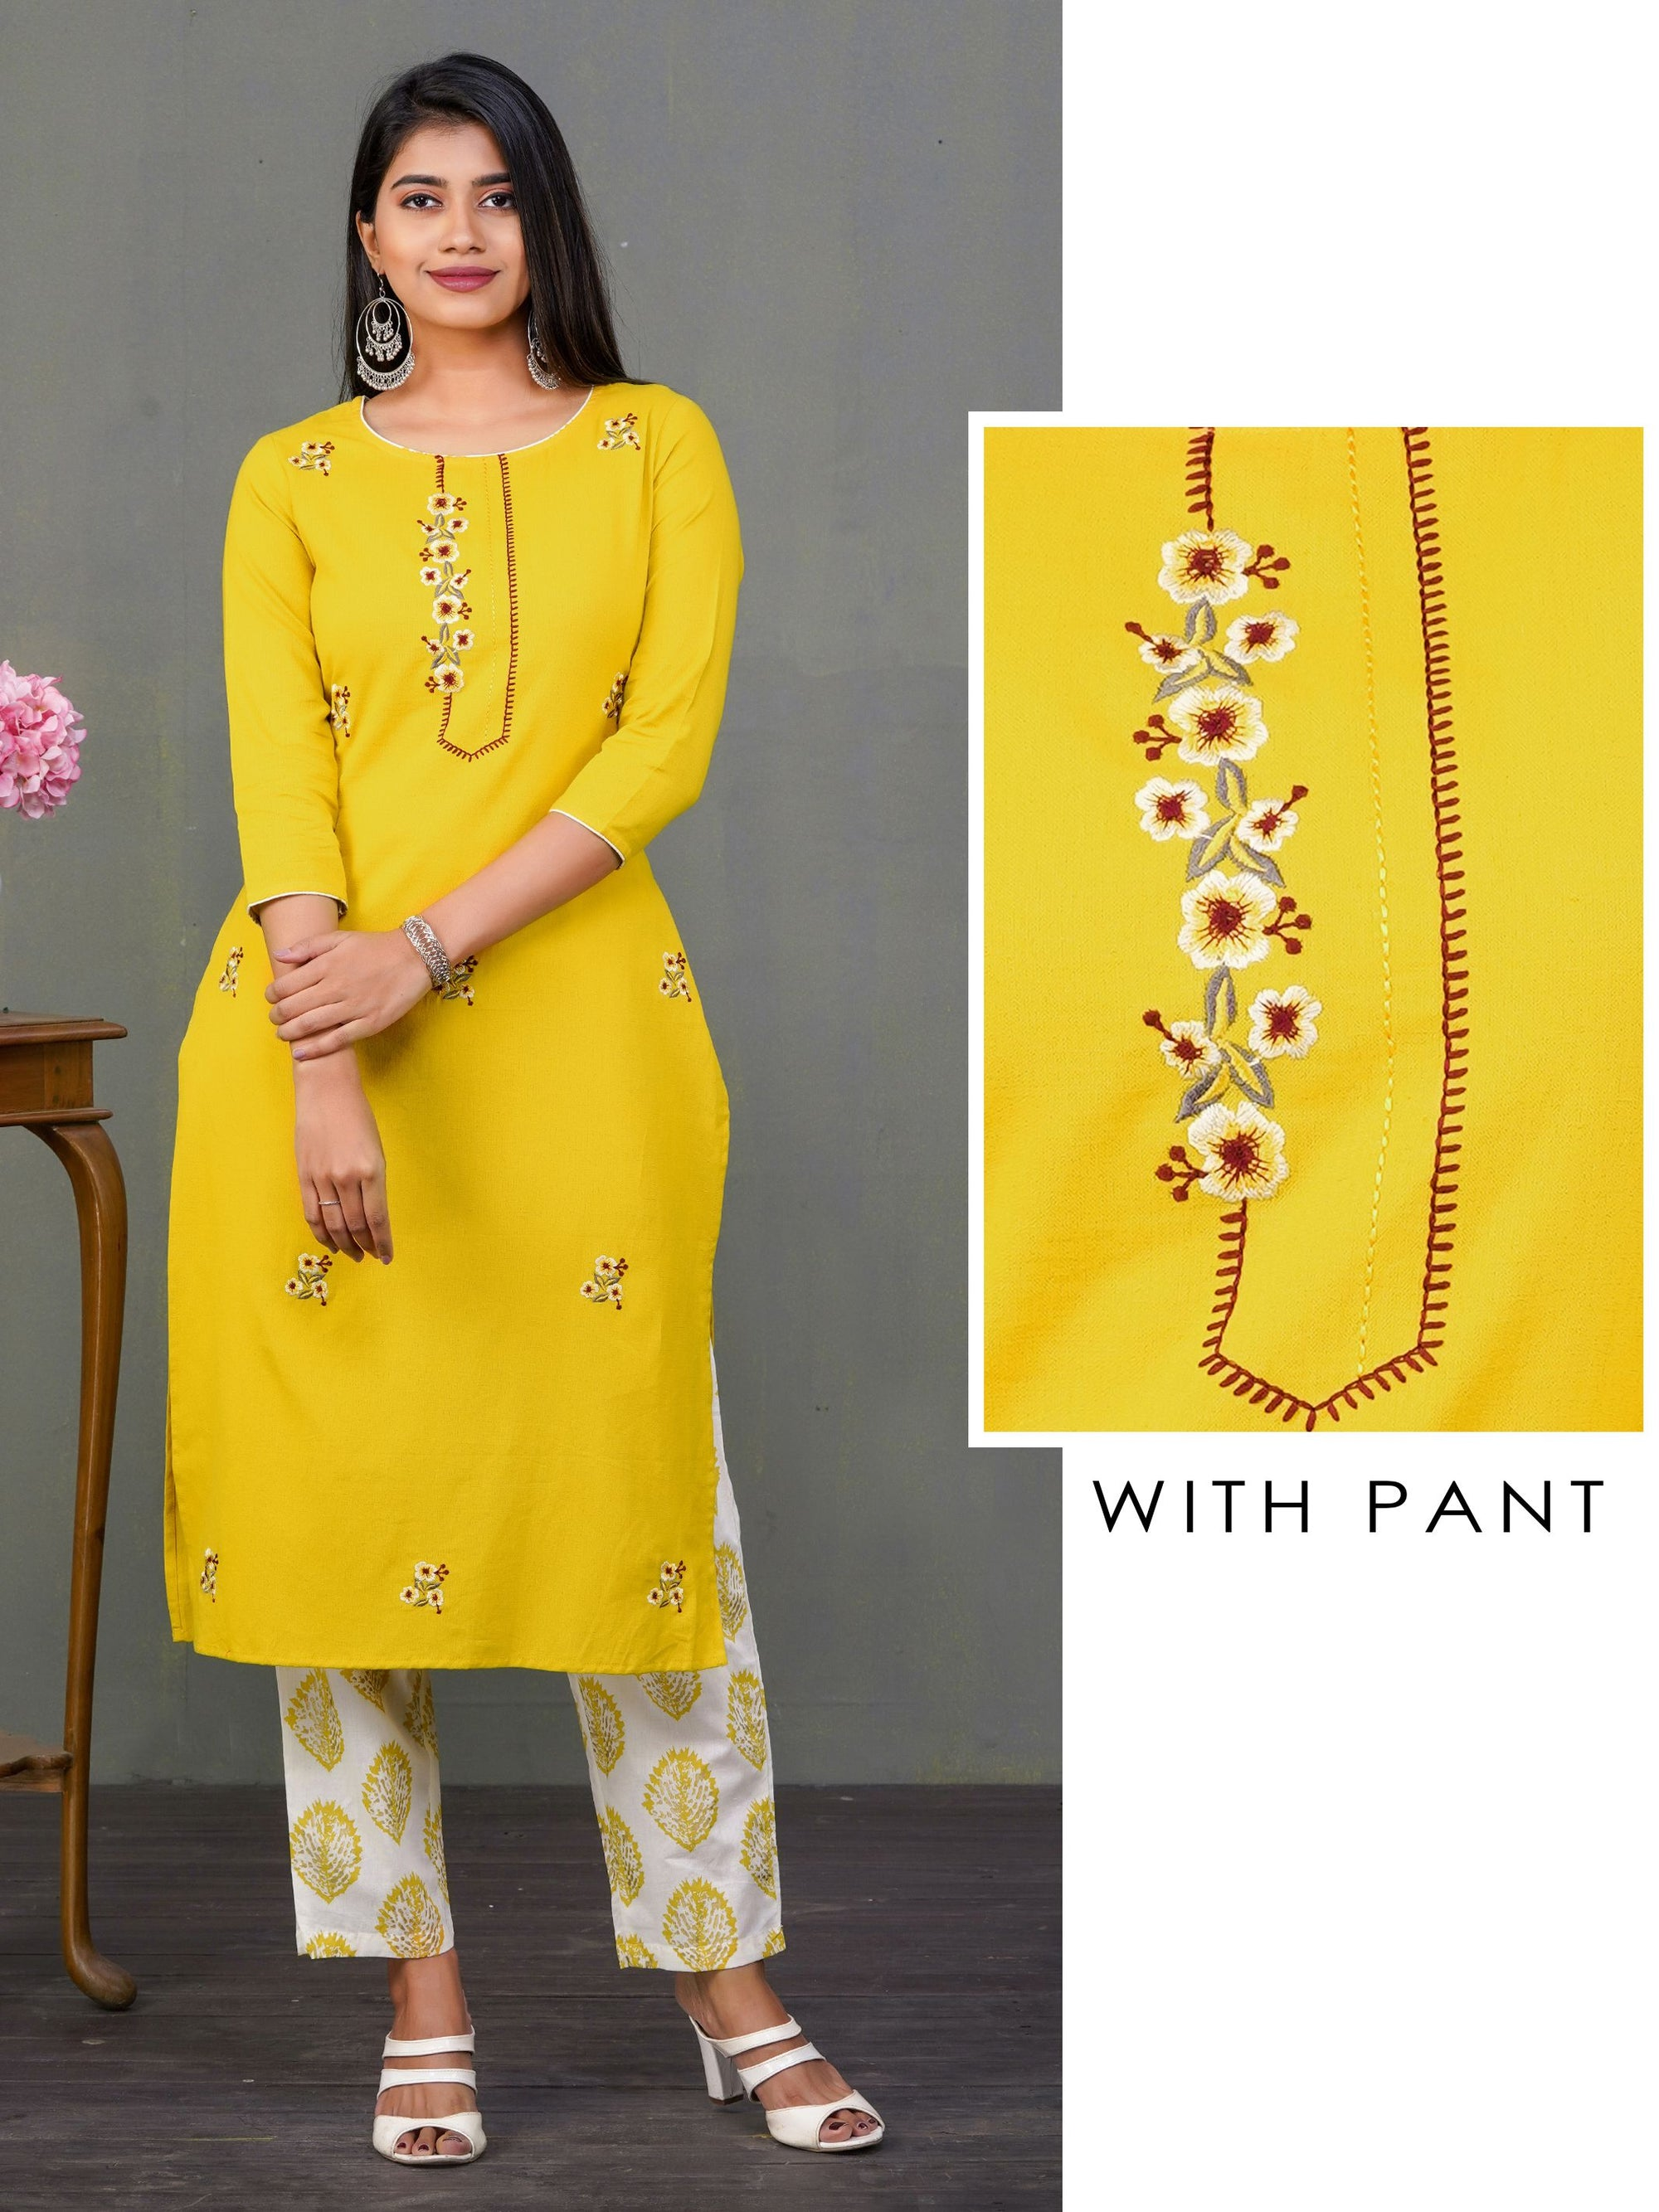 Minimal Floral Embroidered Kurti & Leaf Printed Pant Set - Mustard